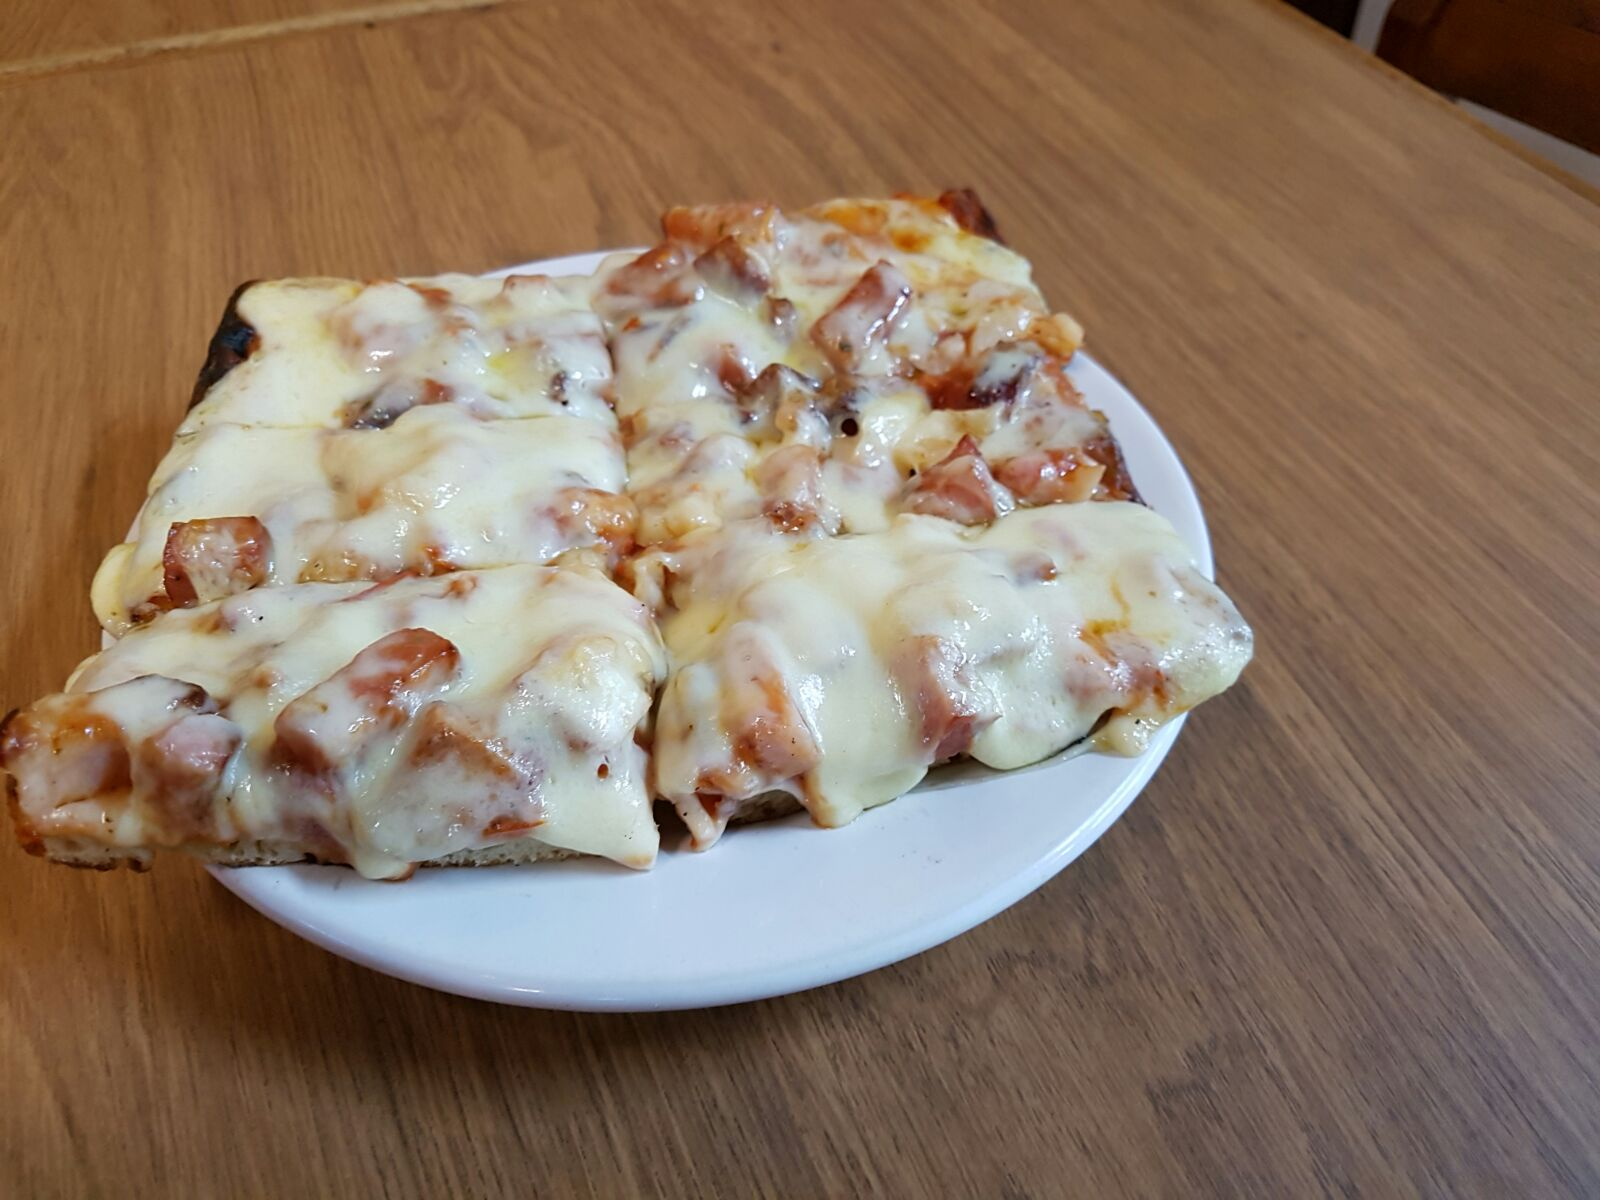 Pizza muzzarella con un gusto (porcion)